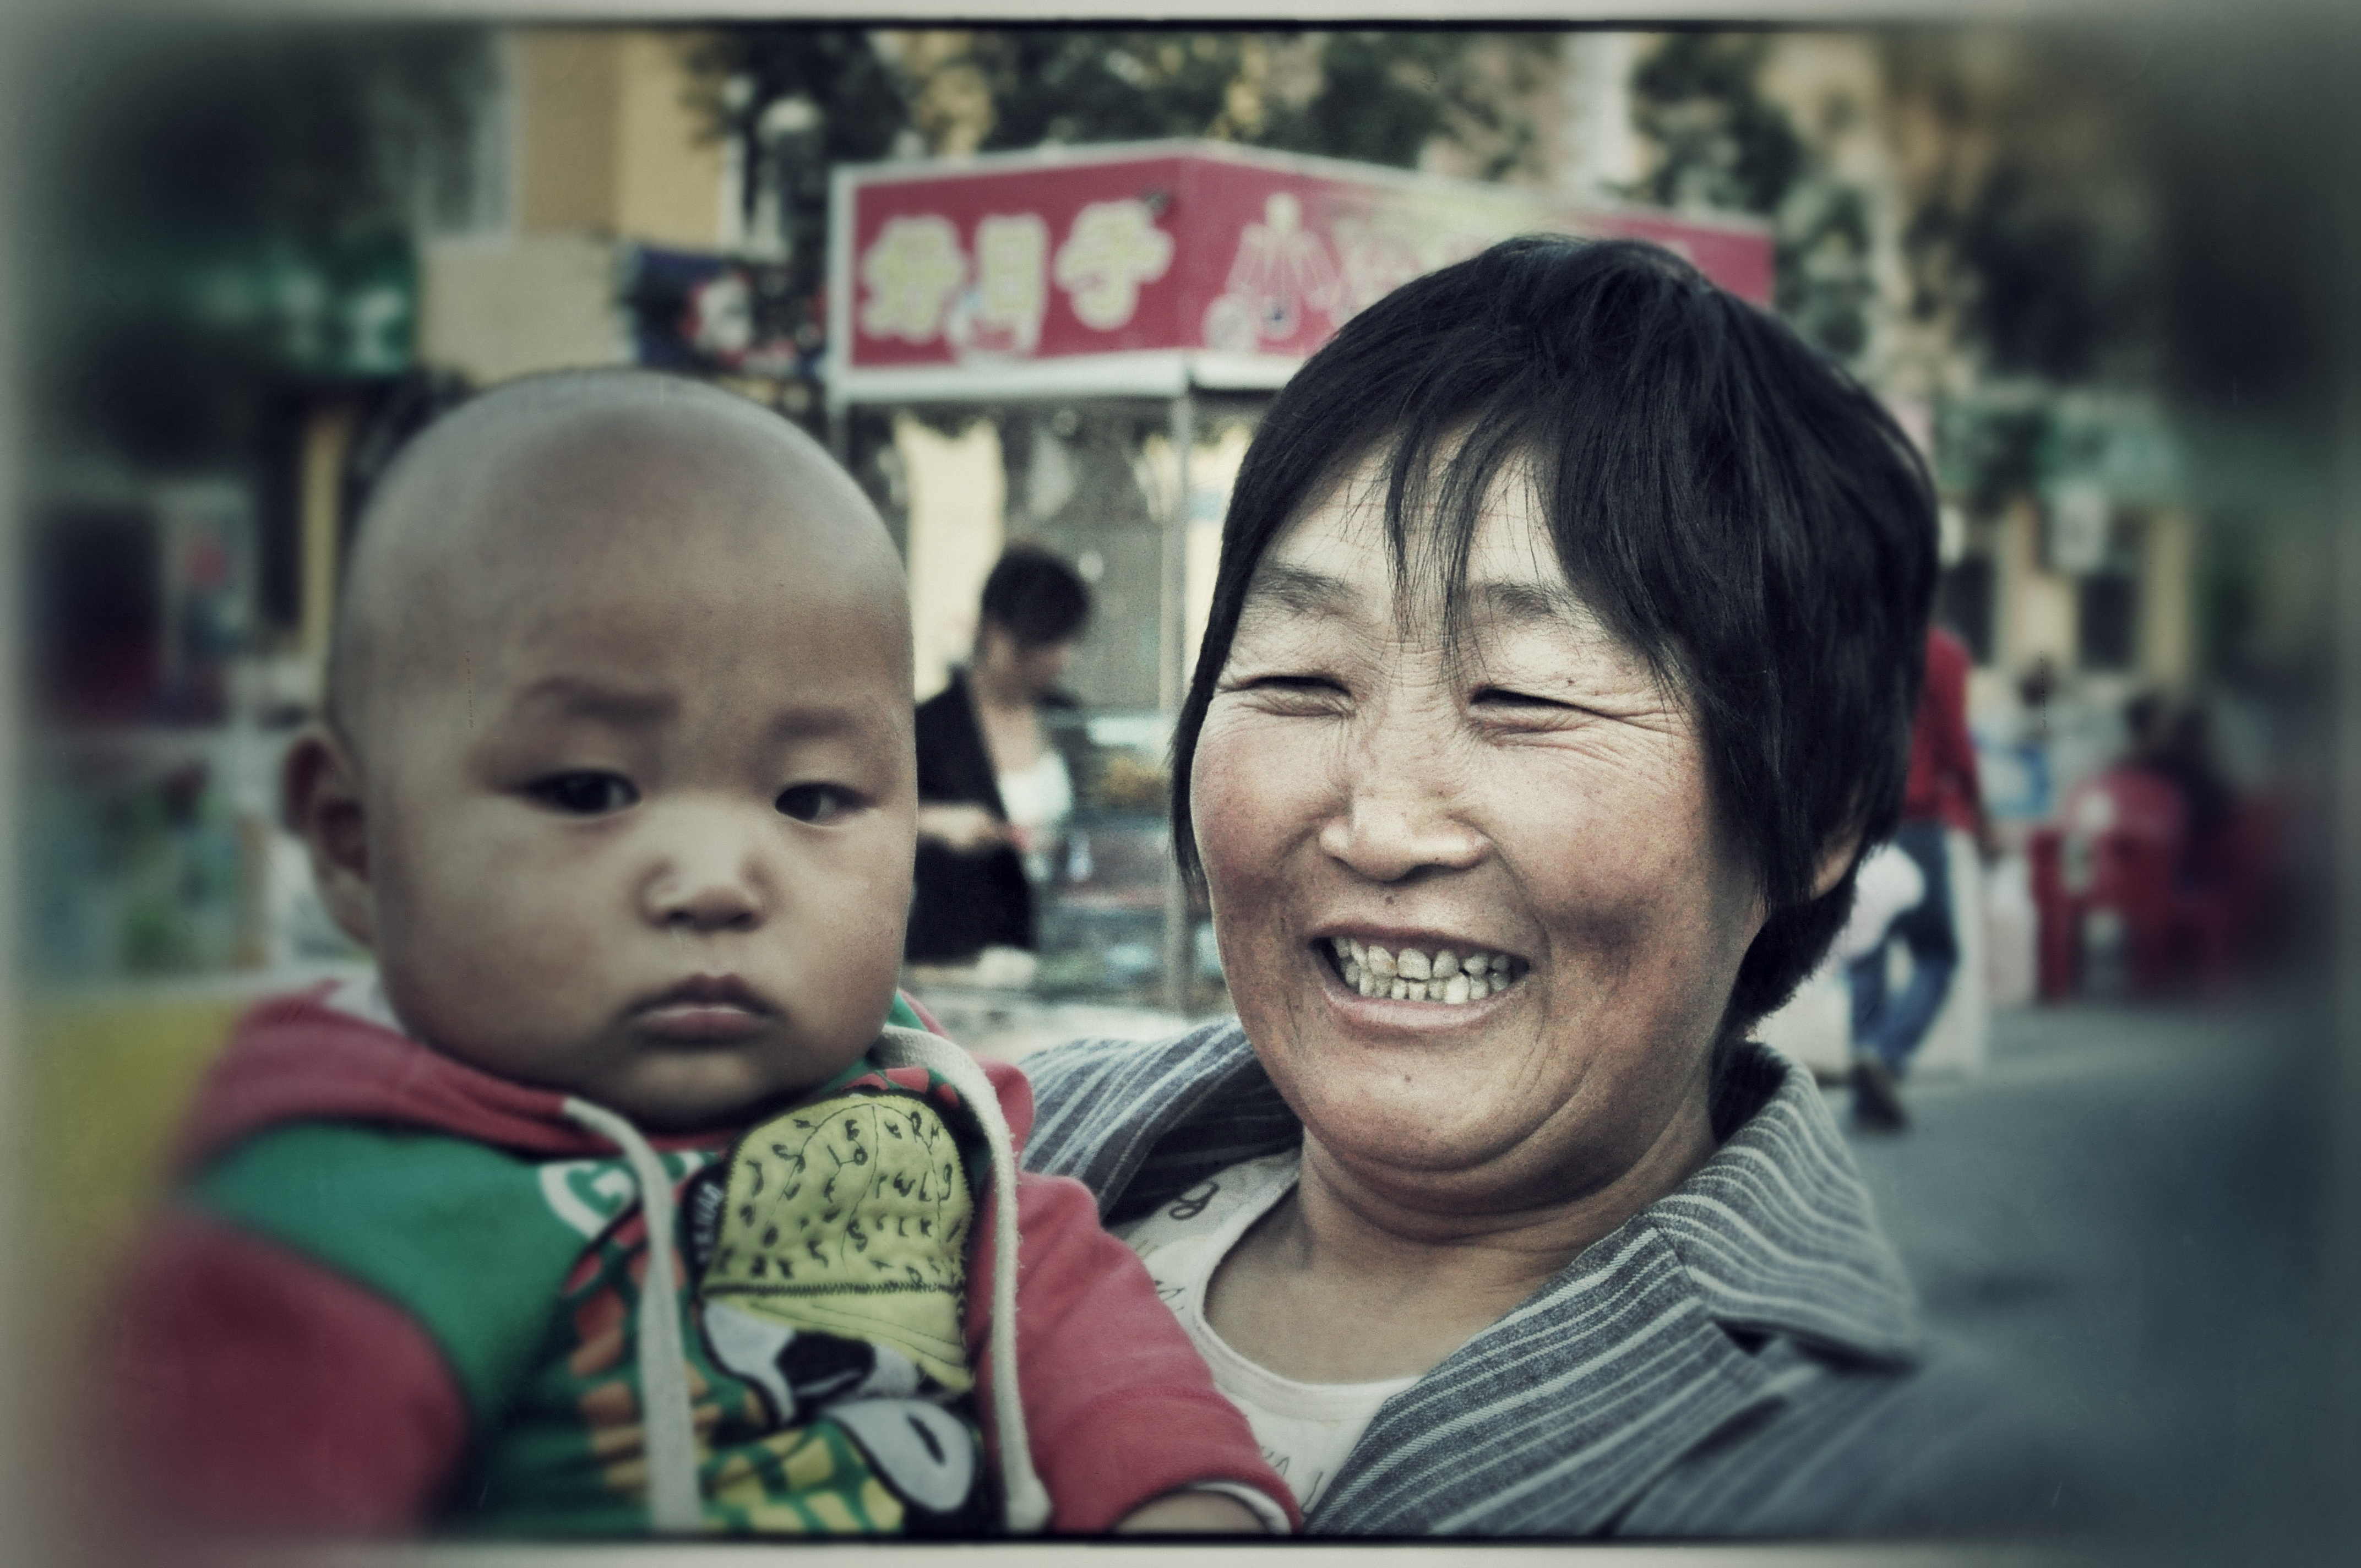 Chinese Portraits : Mother and Son - Portraits from diverse ethnic origins like Uyghur, Han, Kazak, Hui, Xibo and Mongol in China.